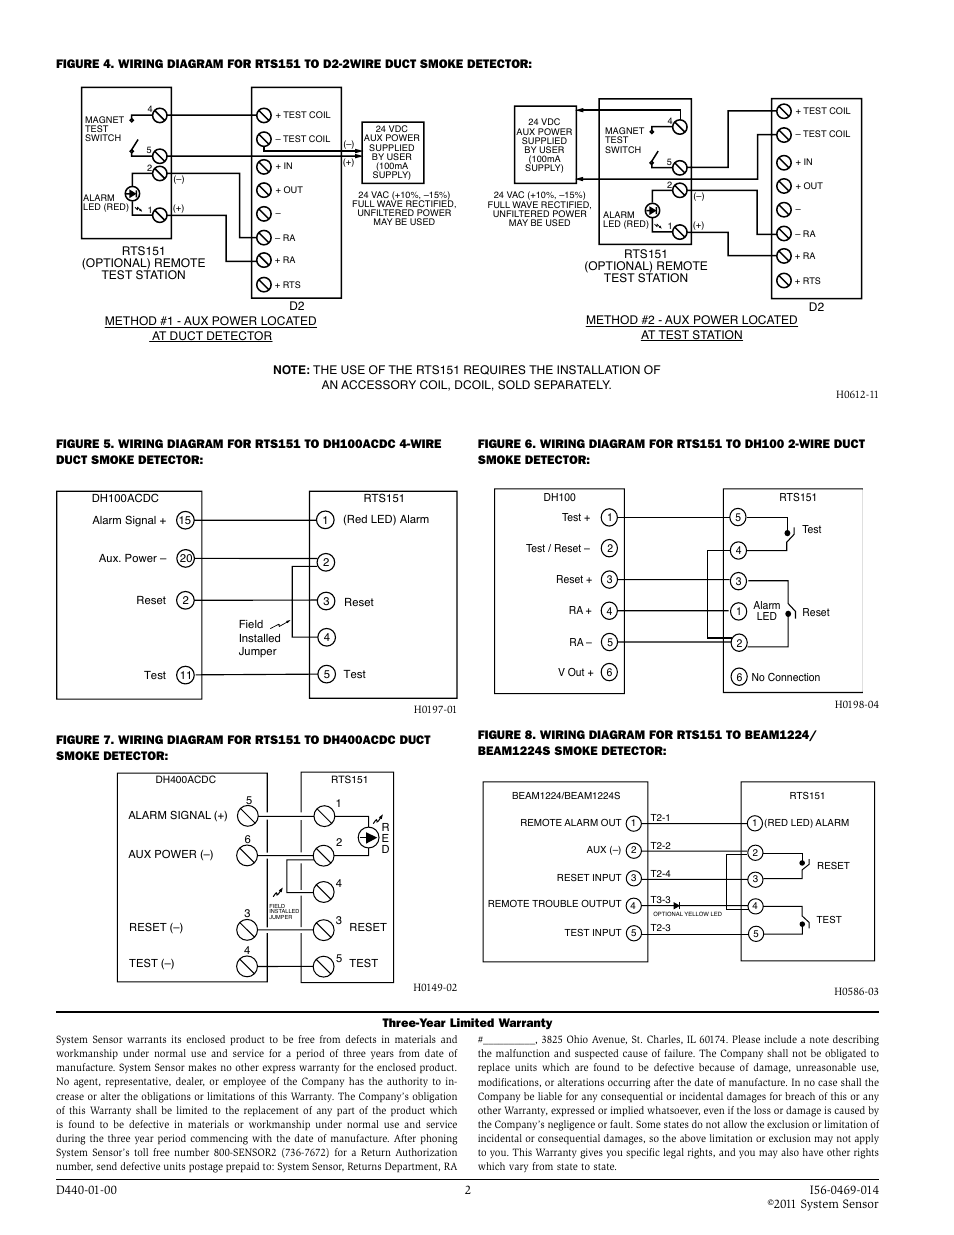 system sensor rts151 page2 system sensor rts151 user manual page 2 2 5R55E Transmission Wiring Diagram at bakdesigns.co